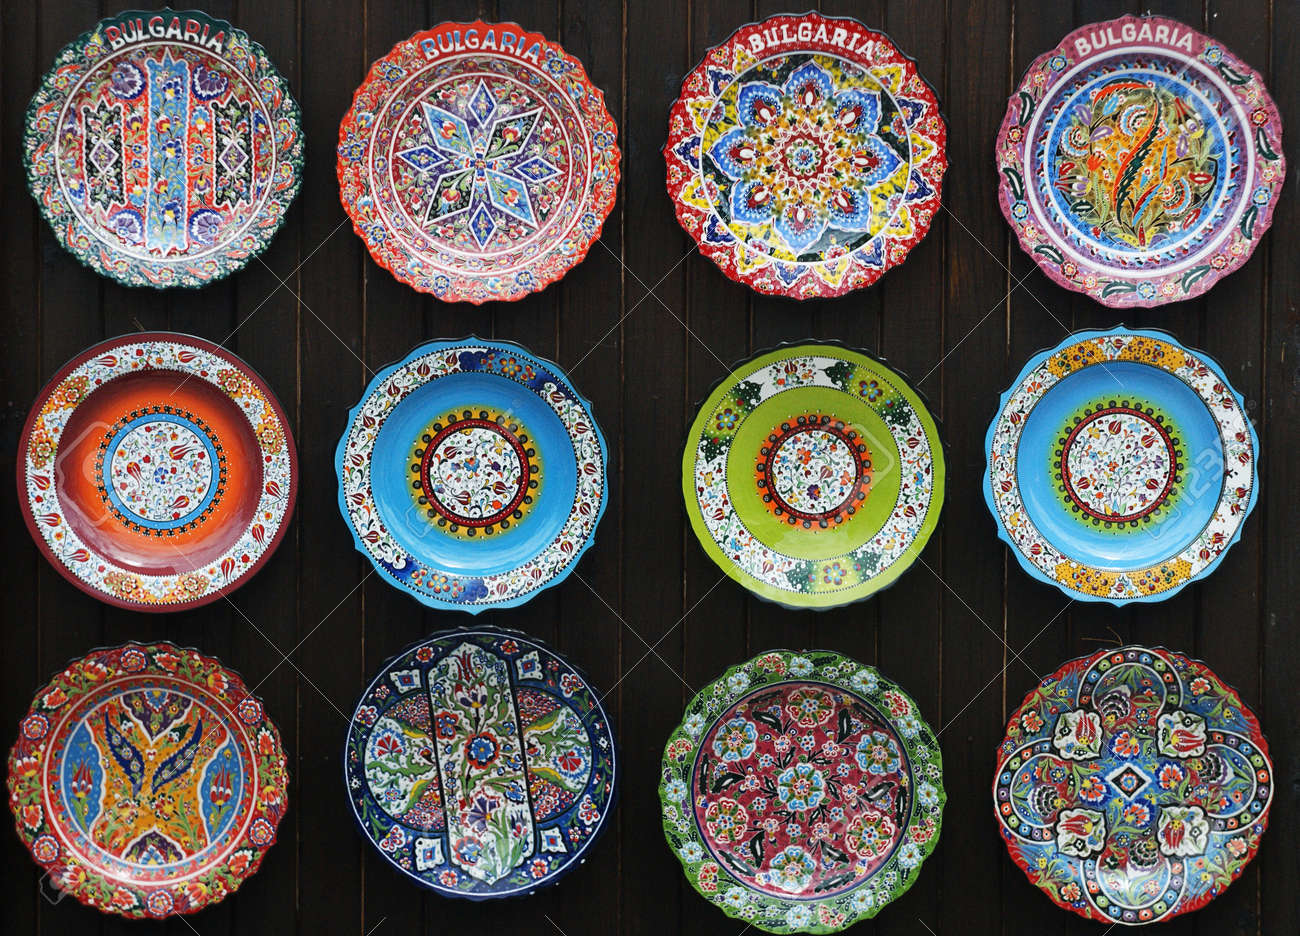 Colorful souvenirs hand painted ceramic plates on the wall in the bulgarian market Stock Photo - & Colorful Souvenirs Hand Painted Ceramic Plates On The Wall In ...